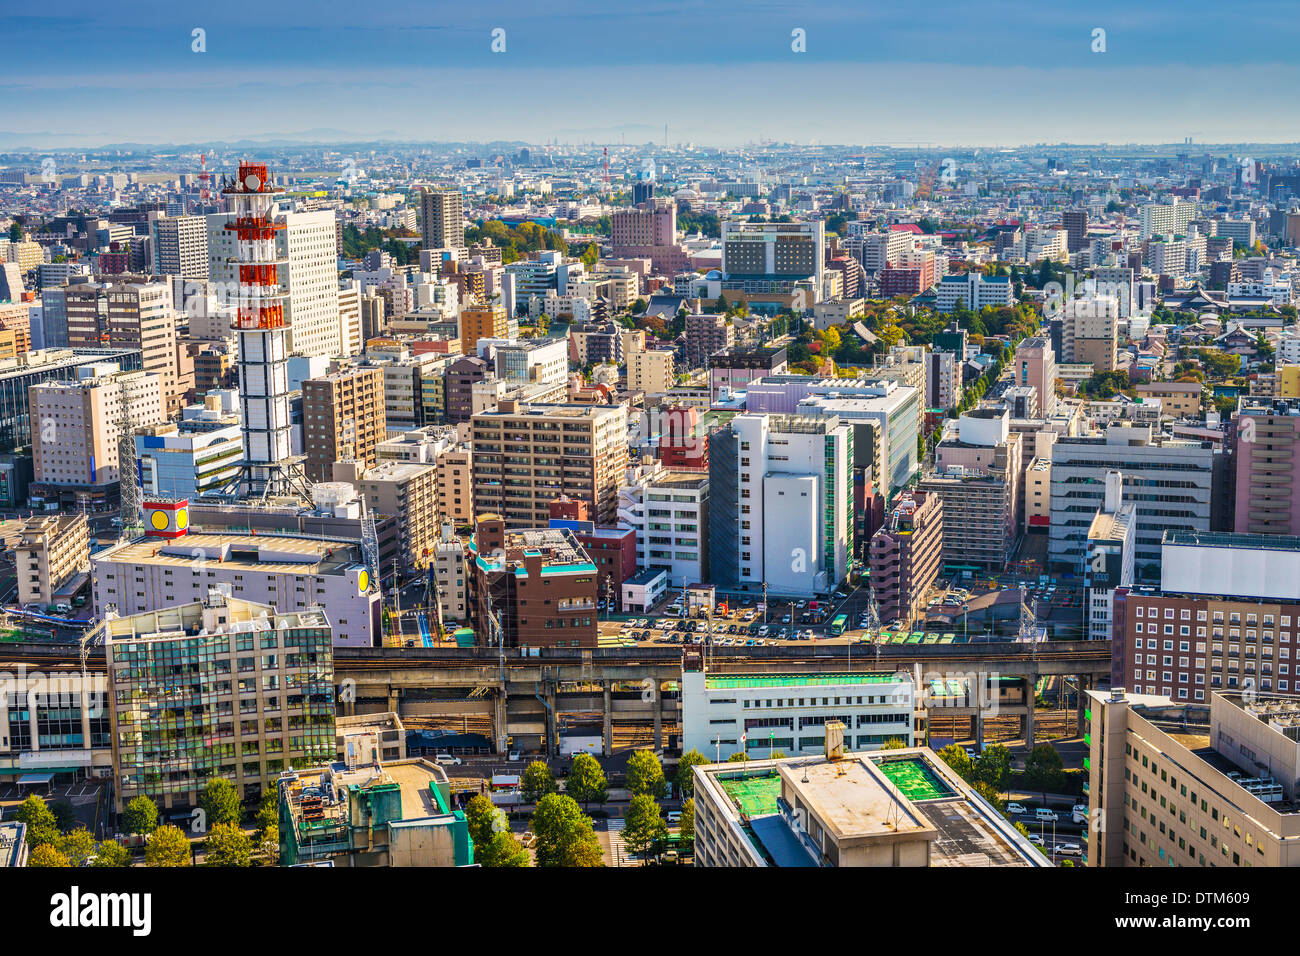 Sendai, Japan Stadtbild in der Central Station. Stockbild